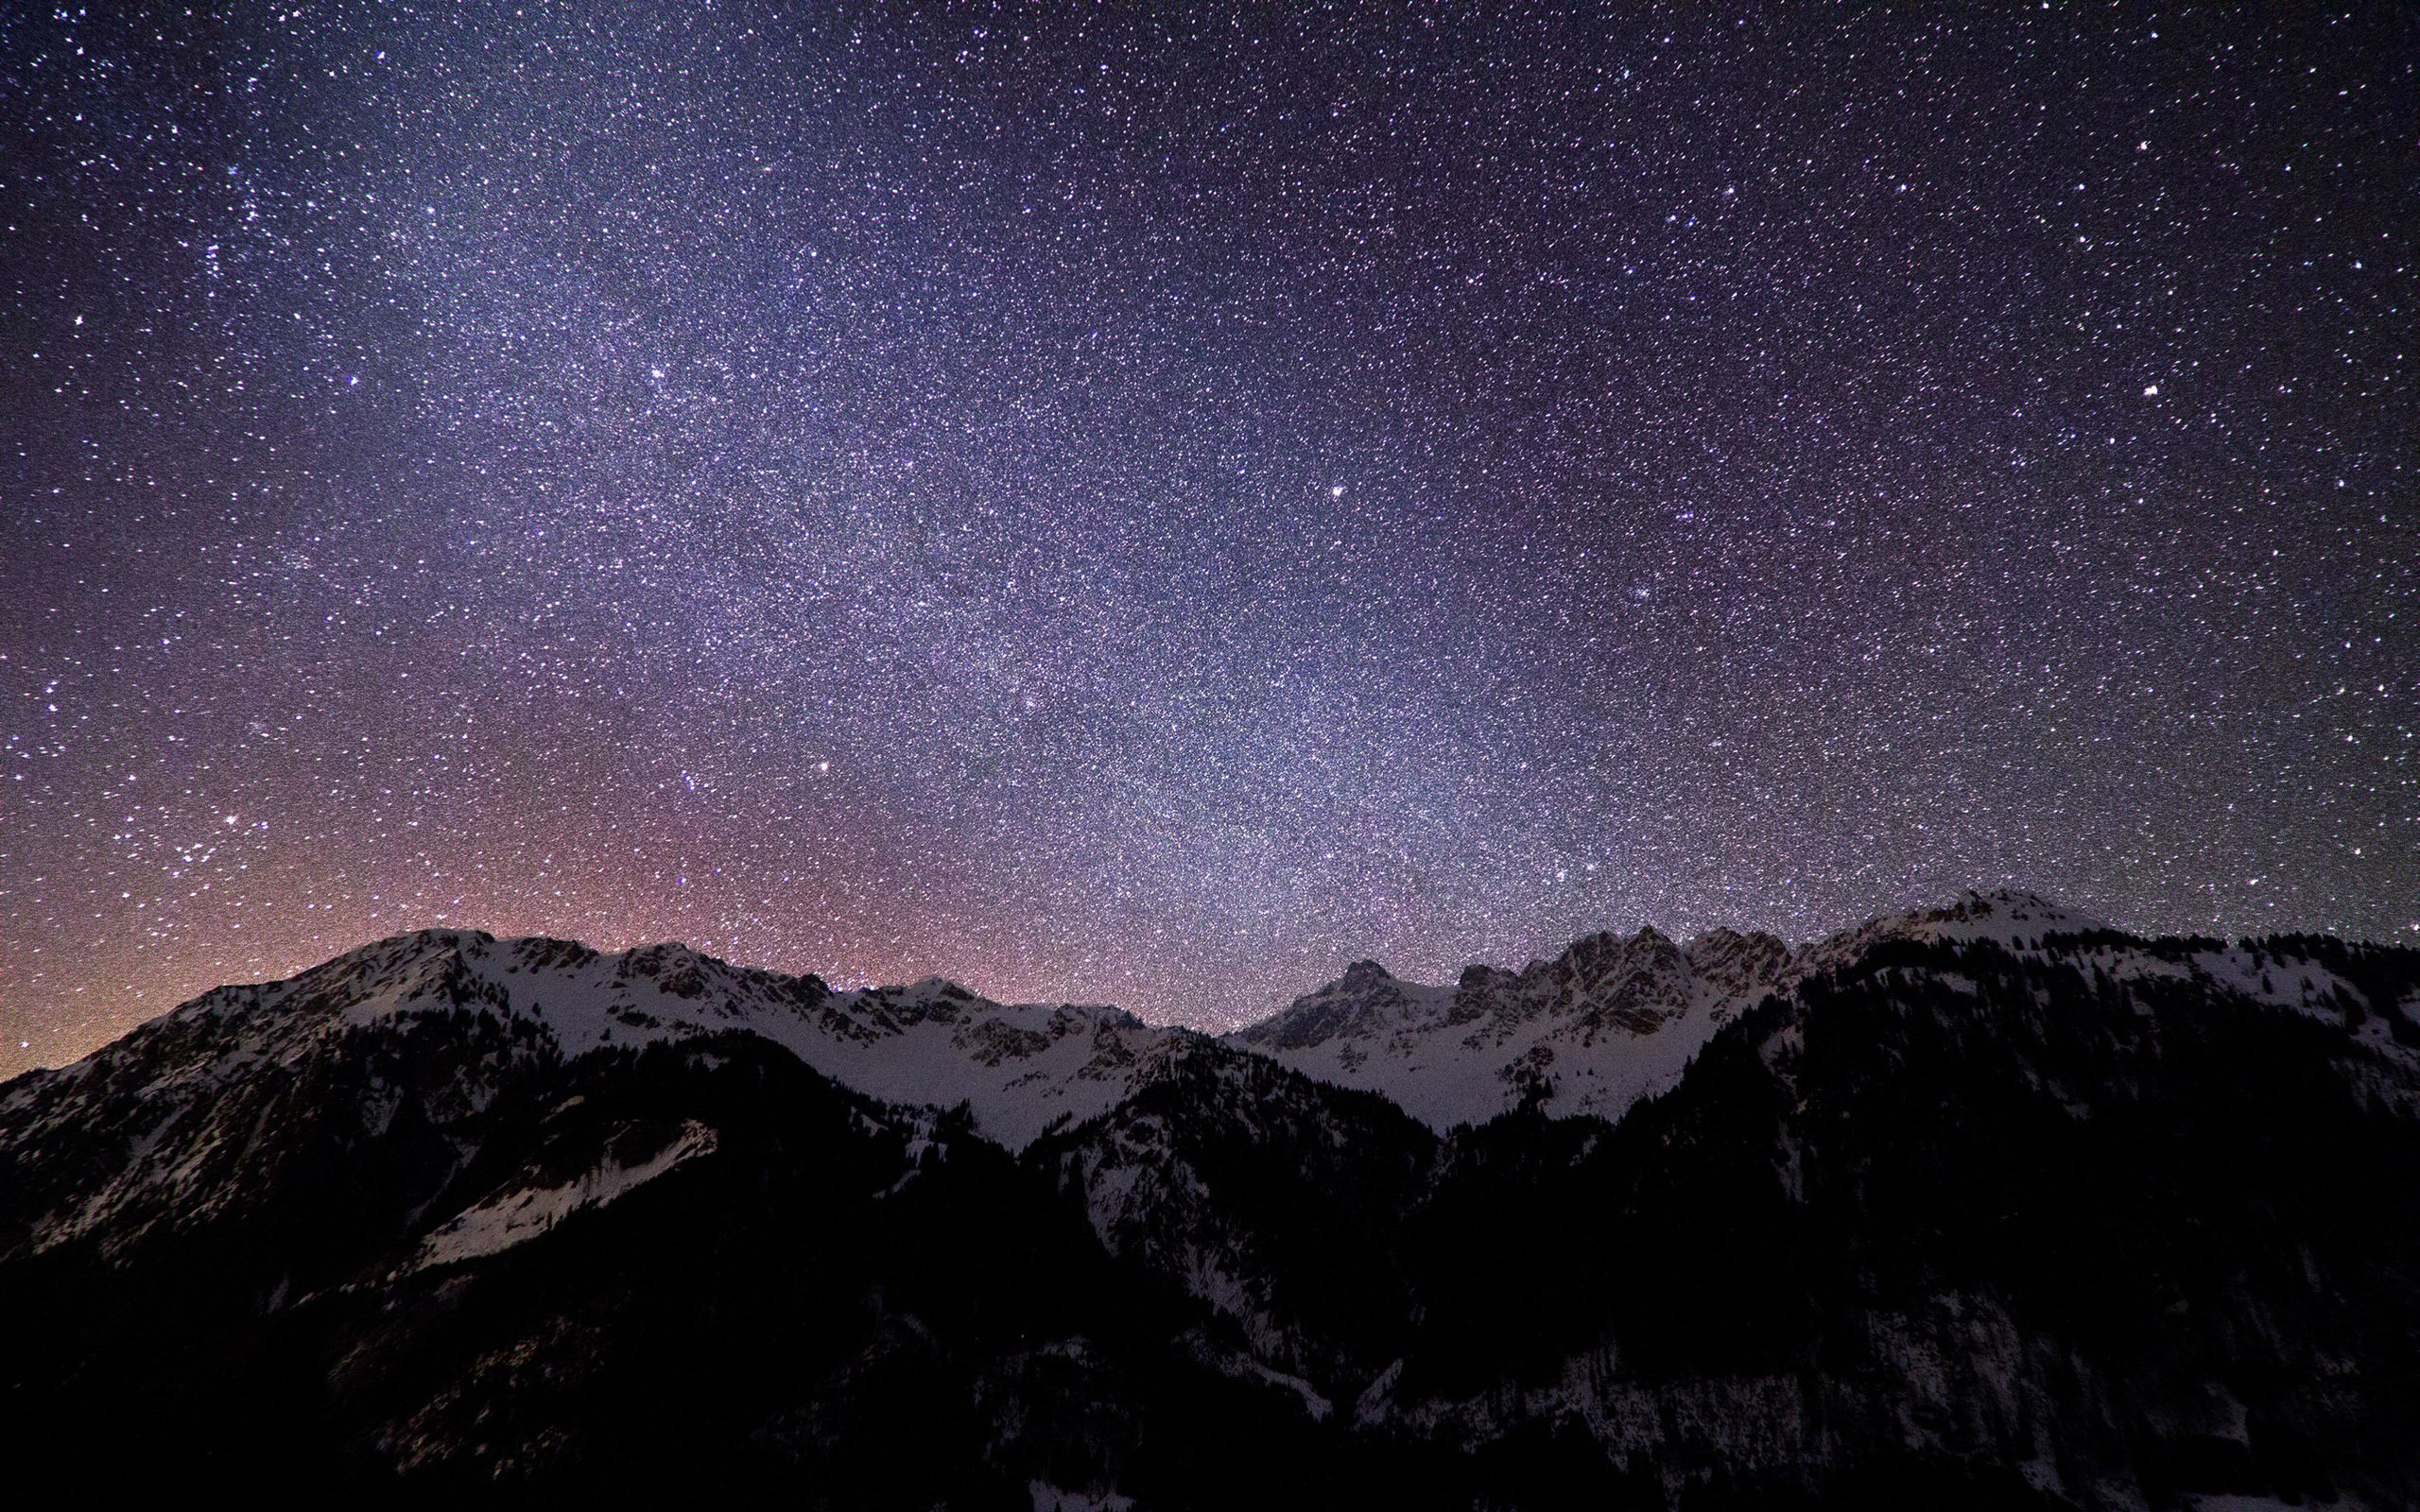 night sky wallpapers hd - photo #12